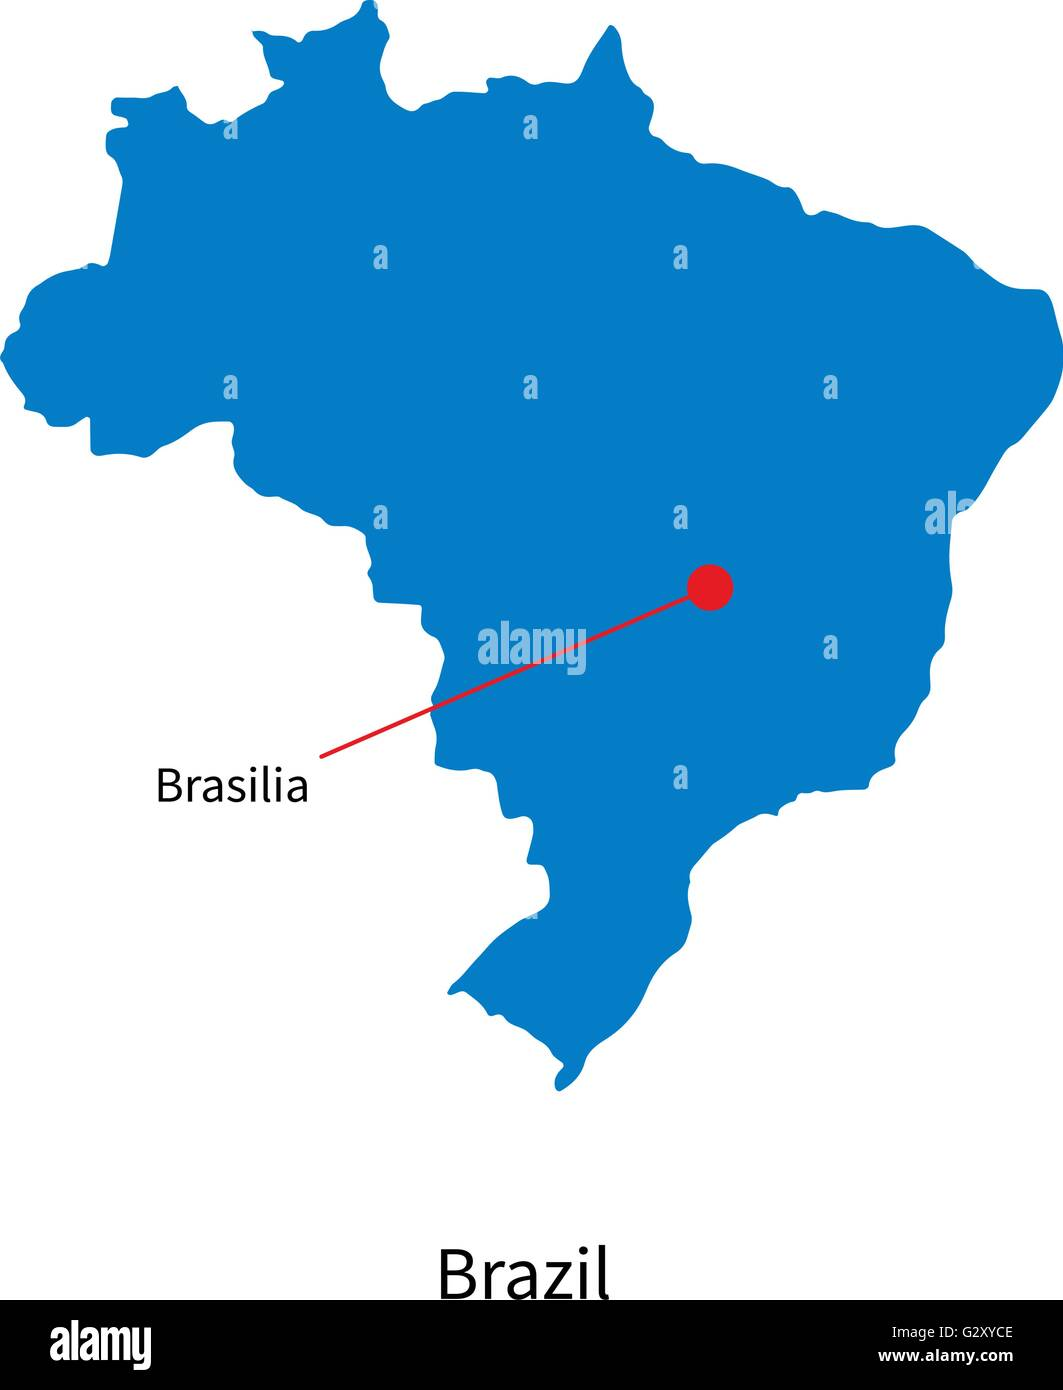 Detailed Vector Map Of Brazil And Capital City Brasilia Stock - Brazil map